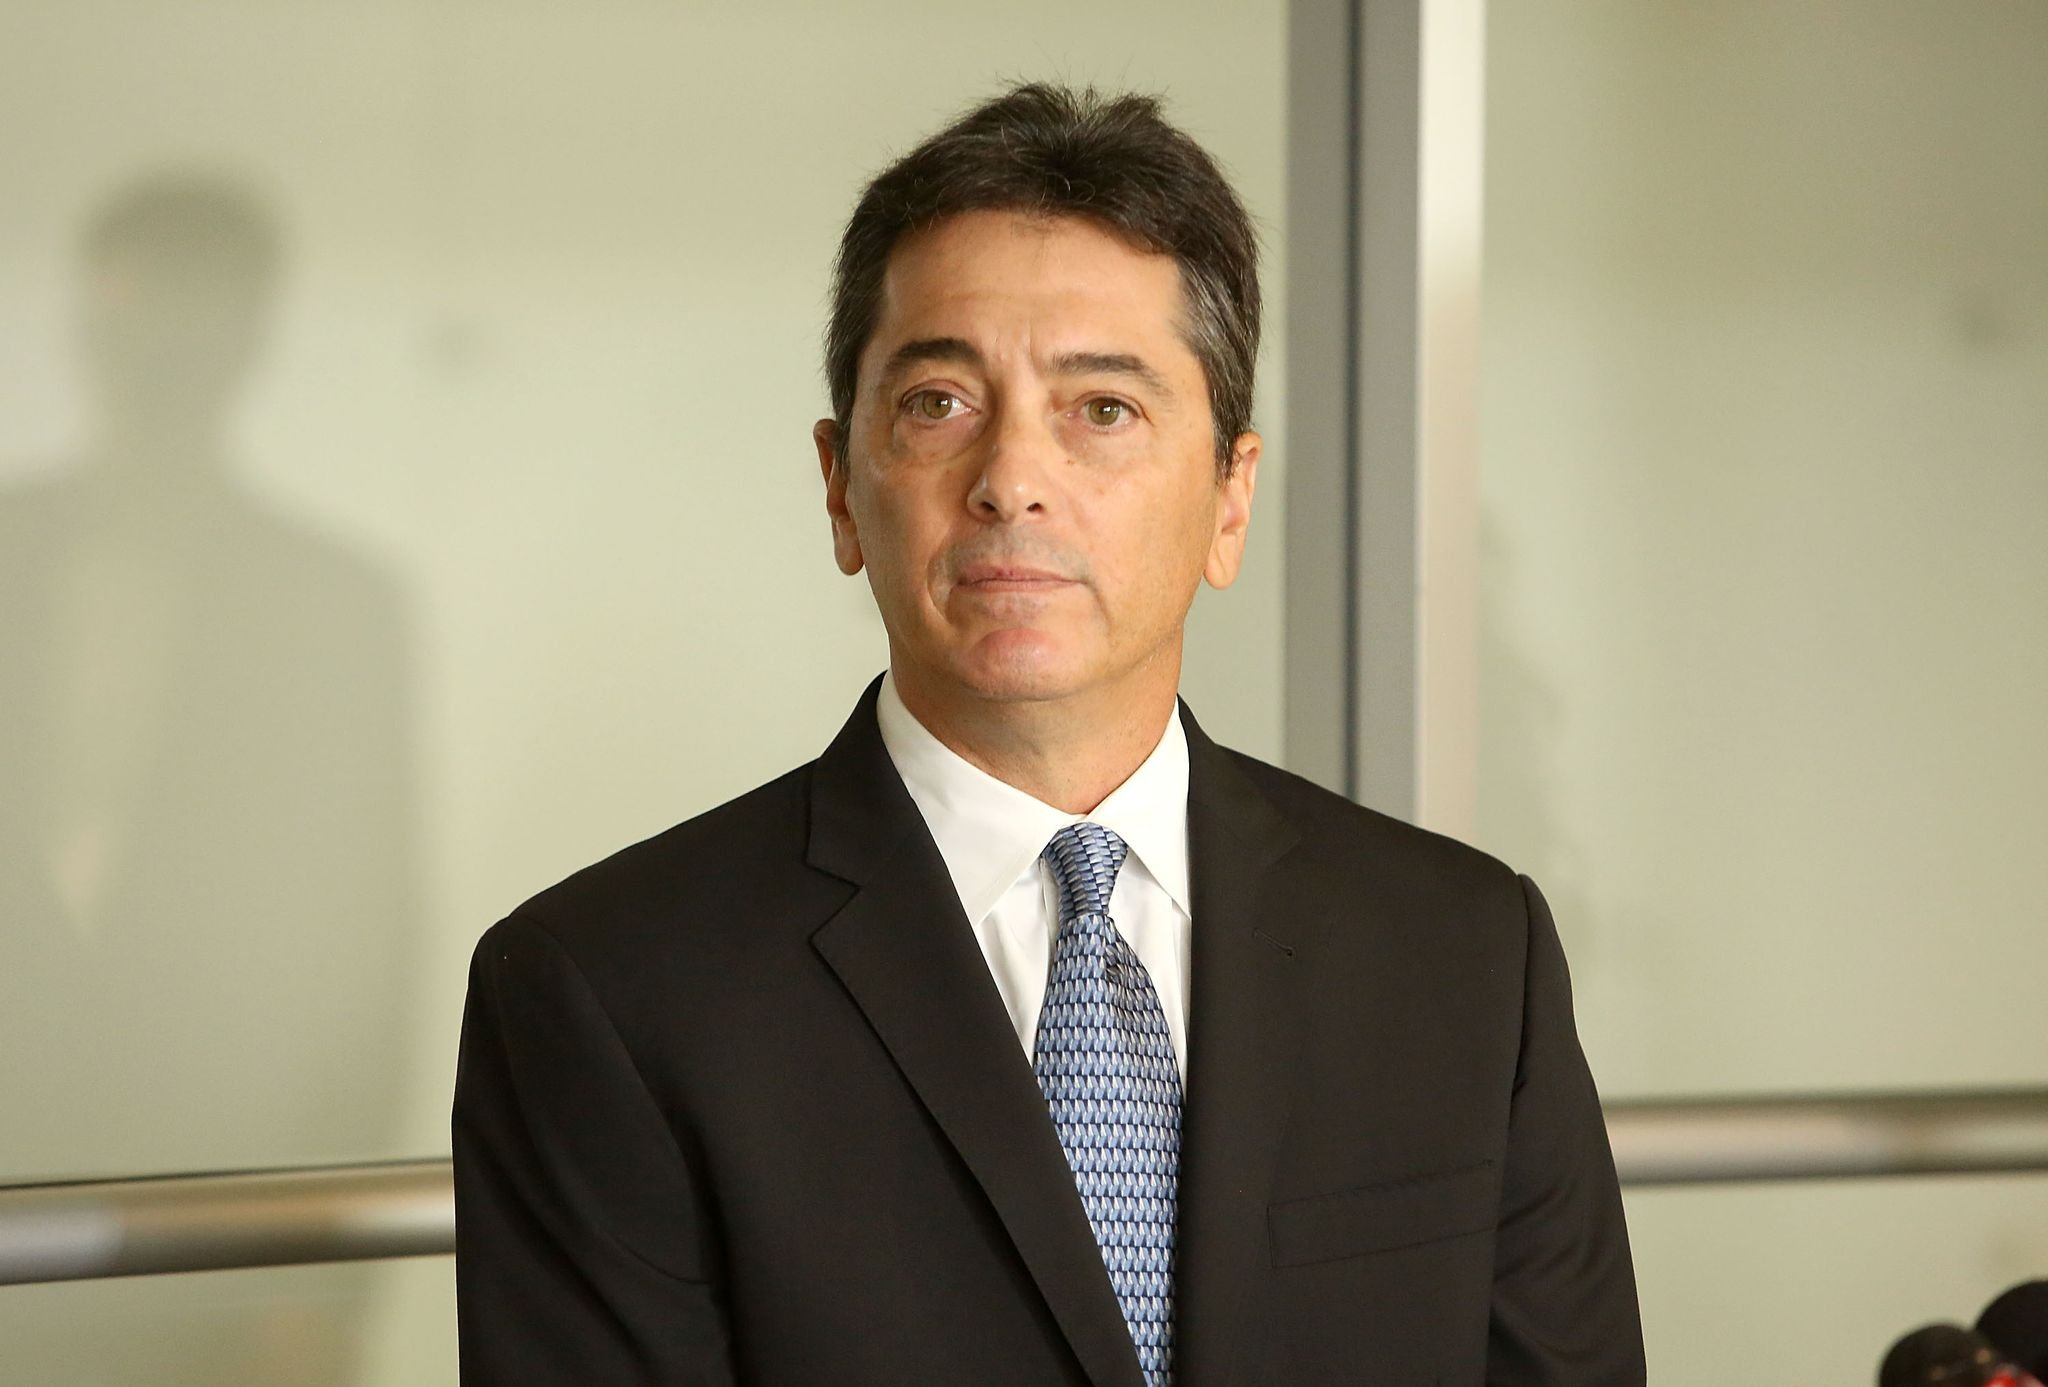 Scott Baio attends a news conference to discuss harassment allegations  | Getty Images